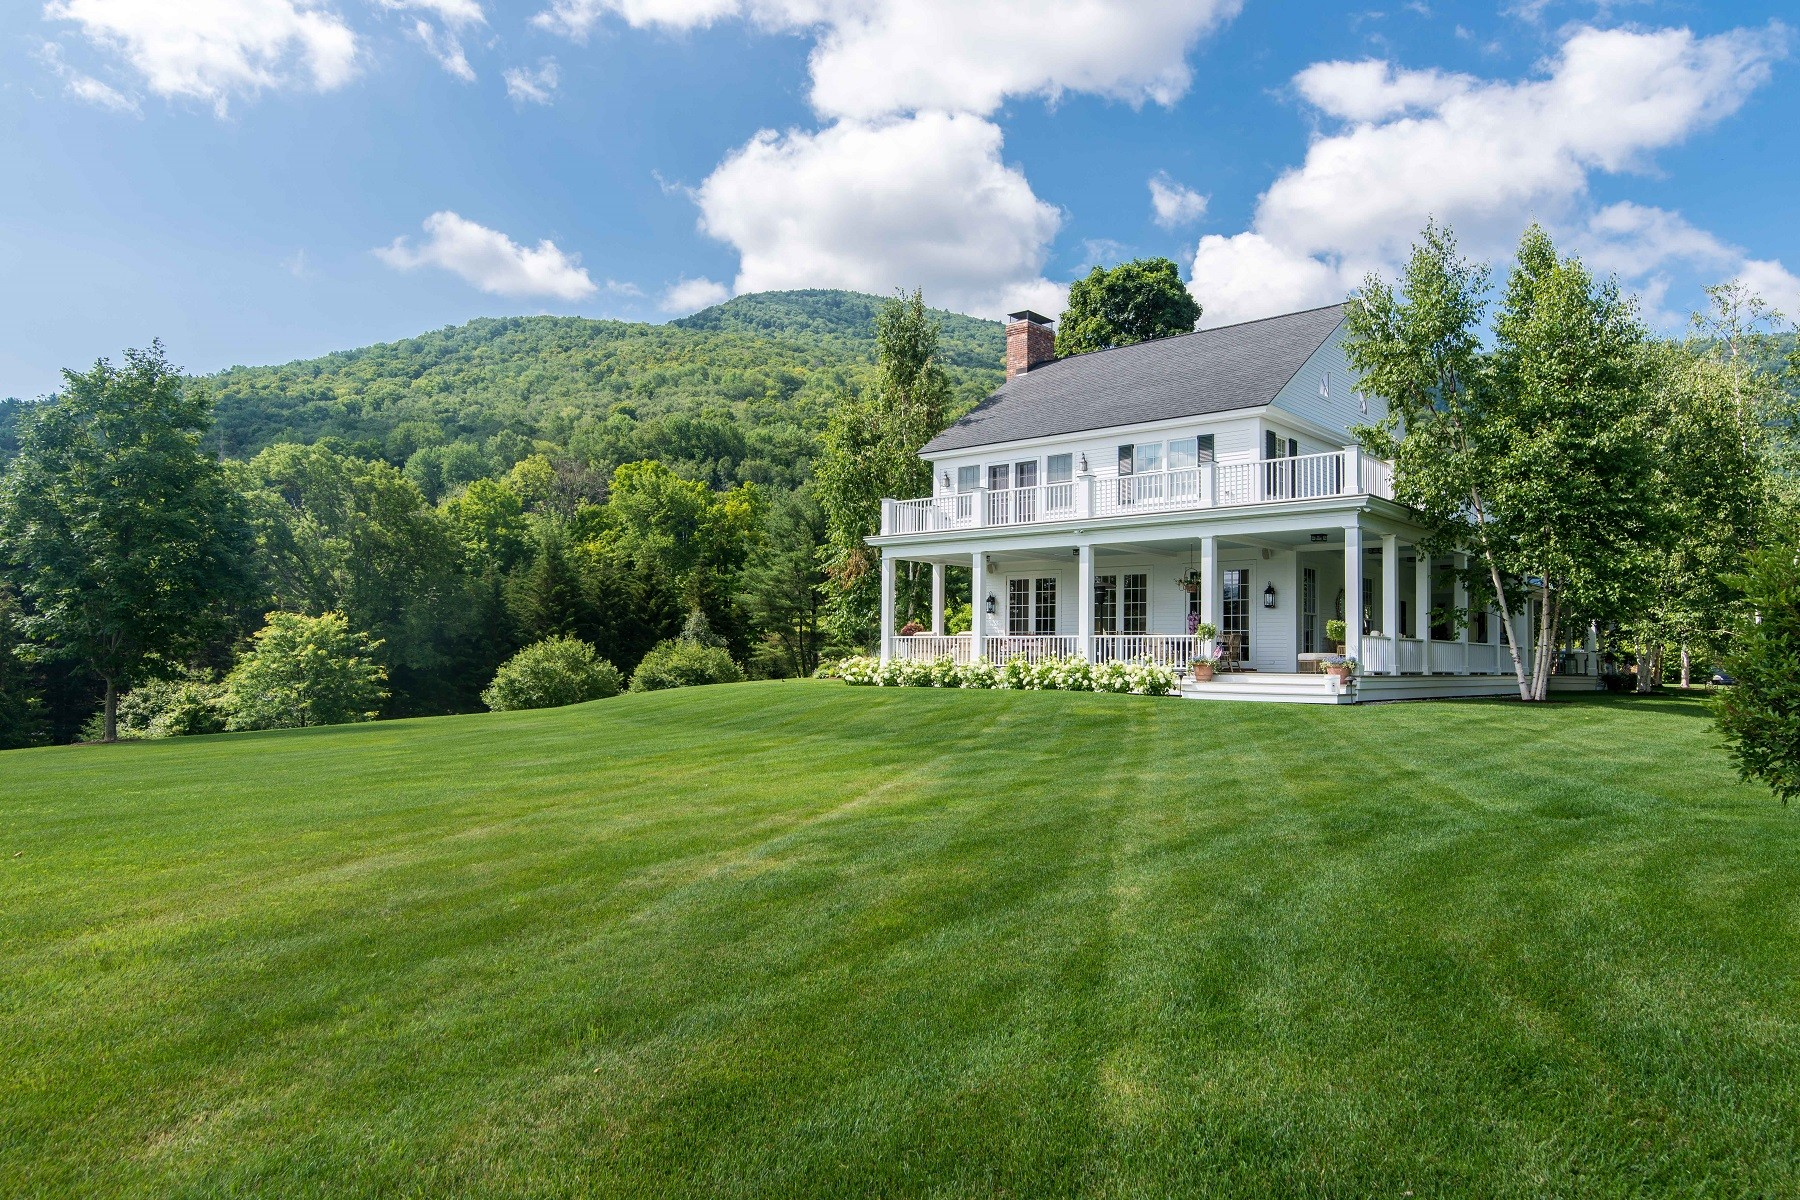 Single Family Home for Sale at High View 1150 114 Nichols Hill Rd Dorset, Vermont, 05251 United States